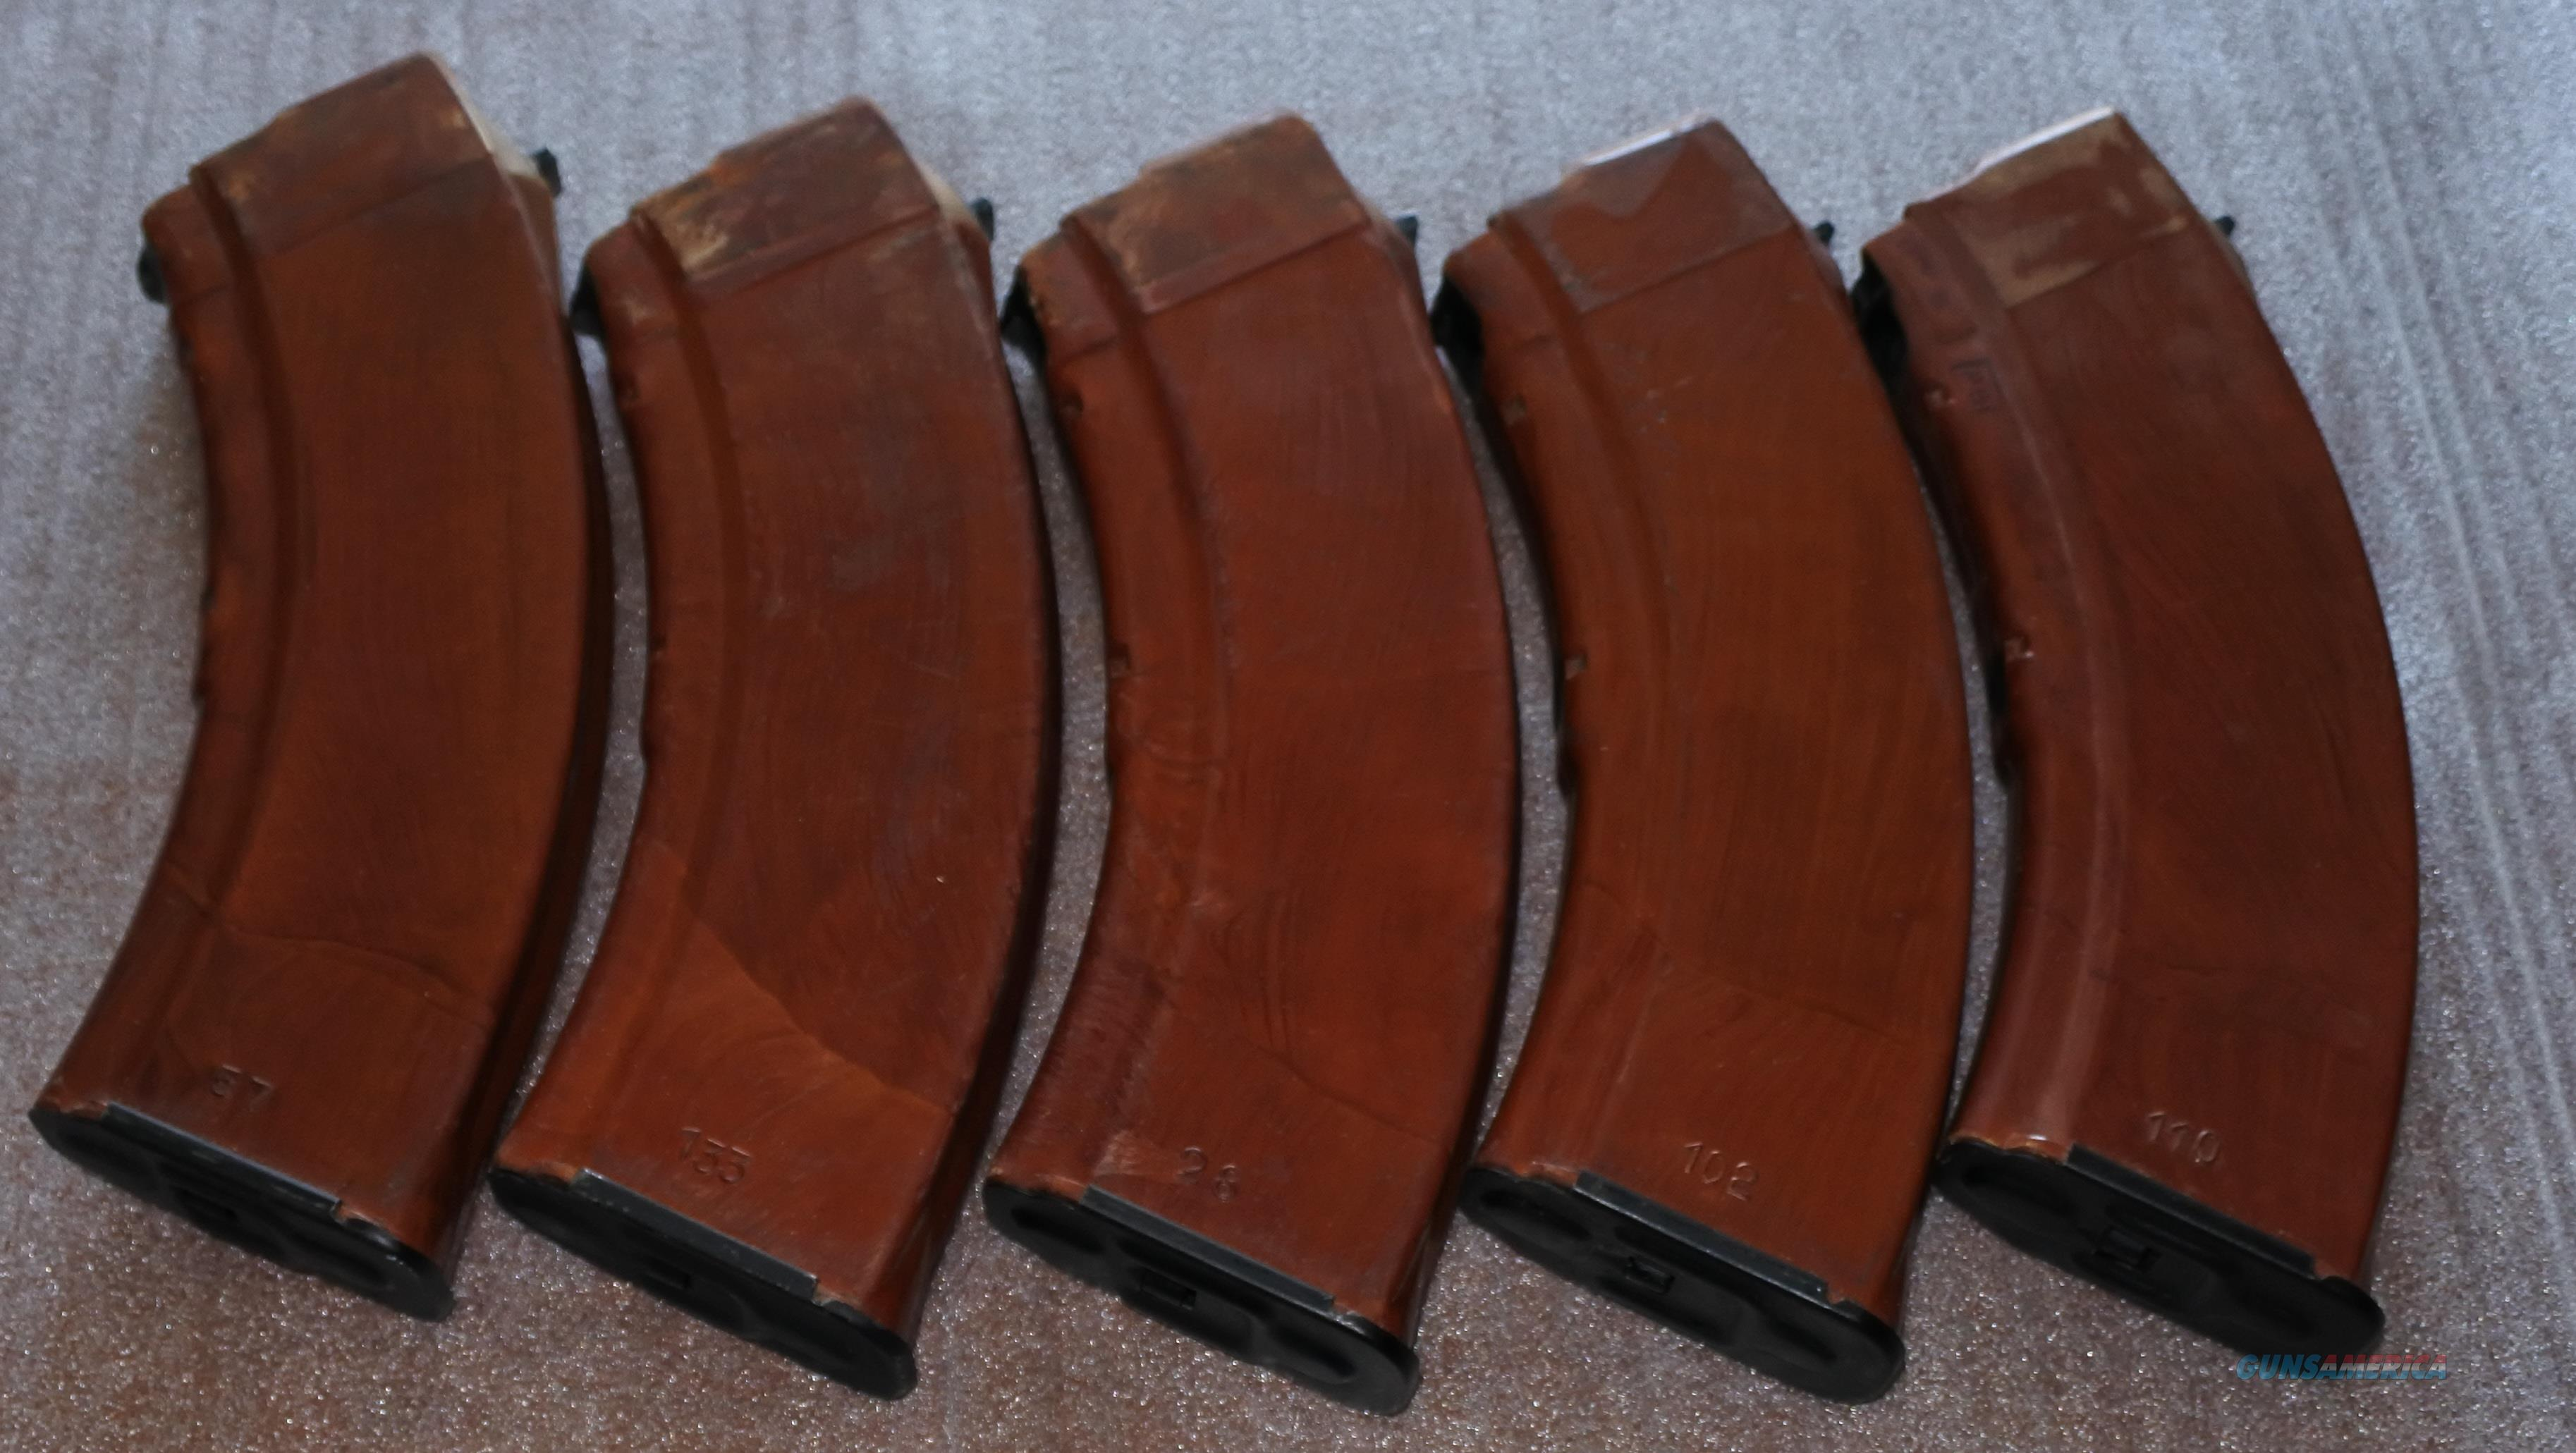 17PC New n Used AK Mag Bundle - 5X Excellent Russian Bakelite's, 3X Yugo 30rd  BHO, Radom Poland 30RD Polymer, 2x Surplus Mags, 5z Tapco 30RD and a 20RD Korean Mag  Non-Guns > Magazines & Clips > Rifle Magazines > AK Family